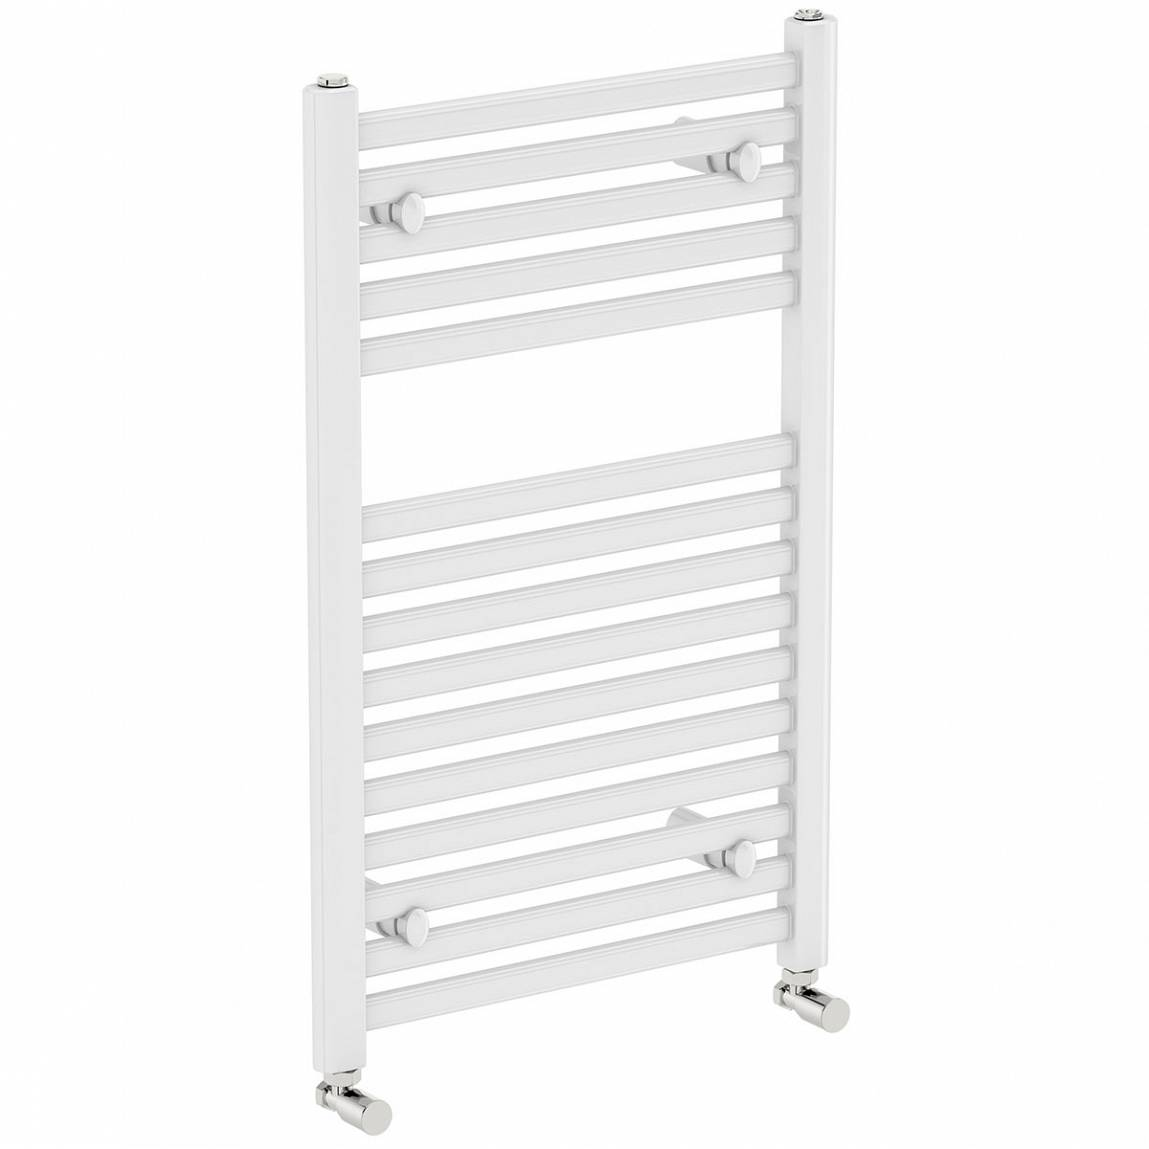 Image of White Heated Towel Rail 800 x 450 PLUS Standard Valves